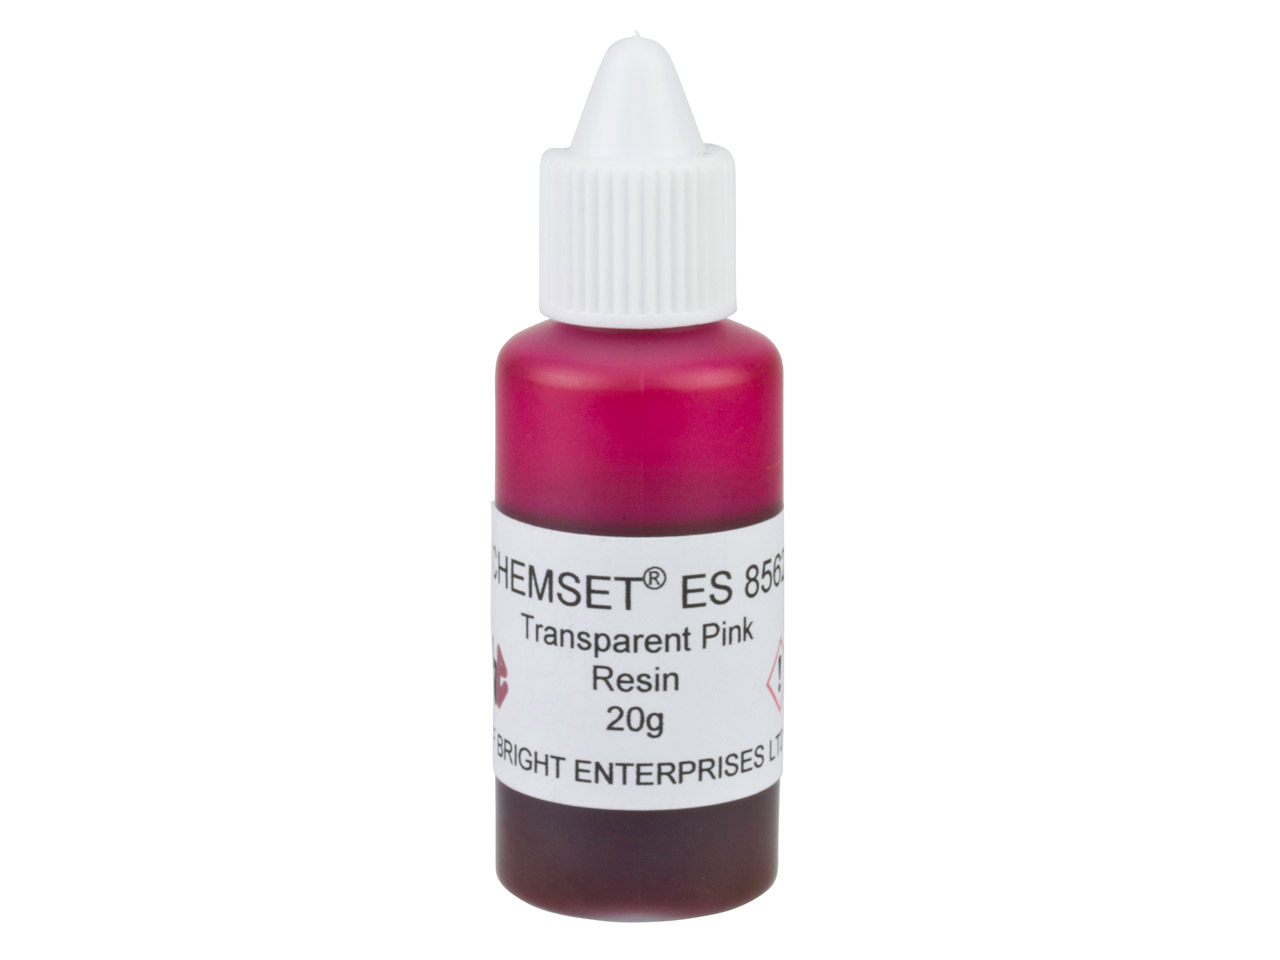 Résine Epoxy transparente rose, pot de 20 g, réf.ES8562